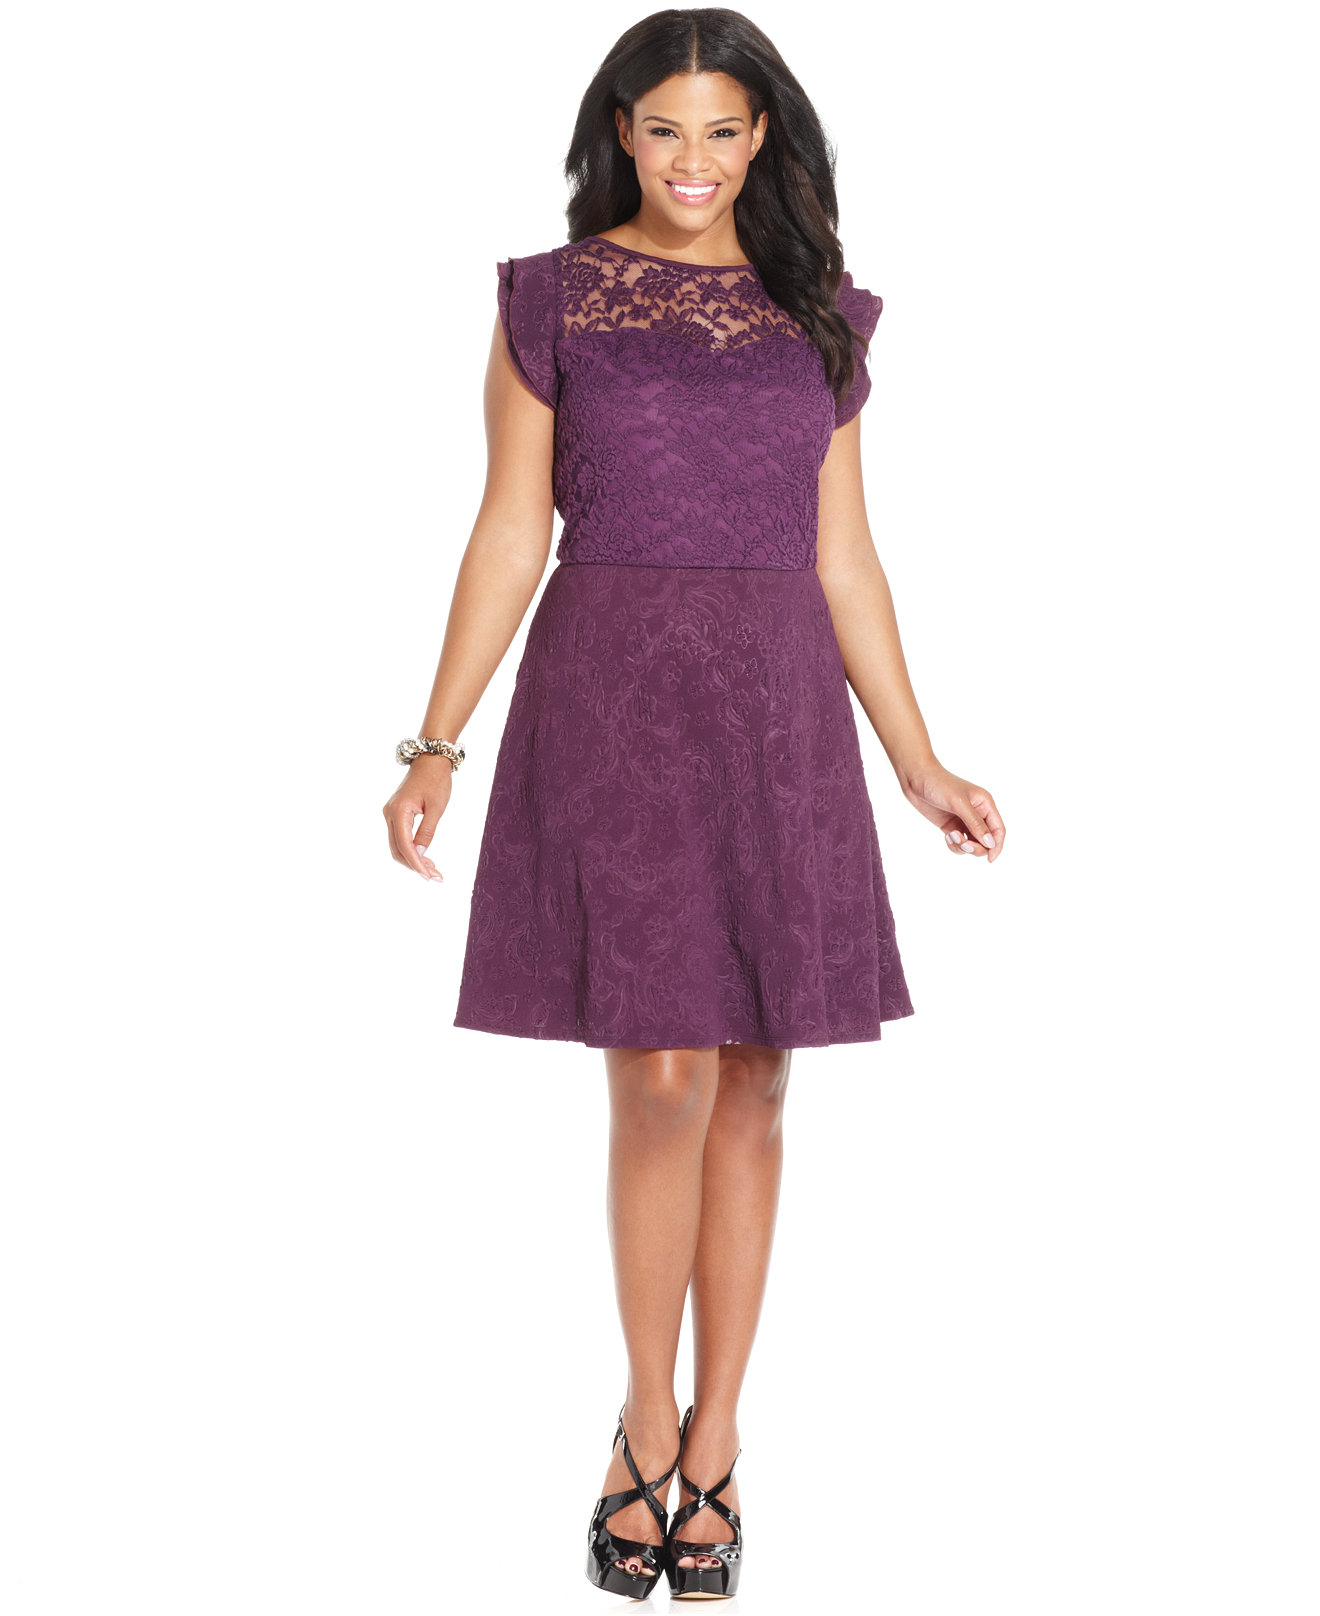 Slip into a swing dress, skater dress, print maxi dress, or floral wrap dress for a brunch party, bridal shower, or any low-key, daytime fete. A cocktail or formal event calls for fancier fare, so take it to the next level with an amped-up style like a sequin dress, lace dress, one shoulder dress, or cutout dress in mini, midi, or maxi length.